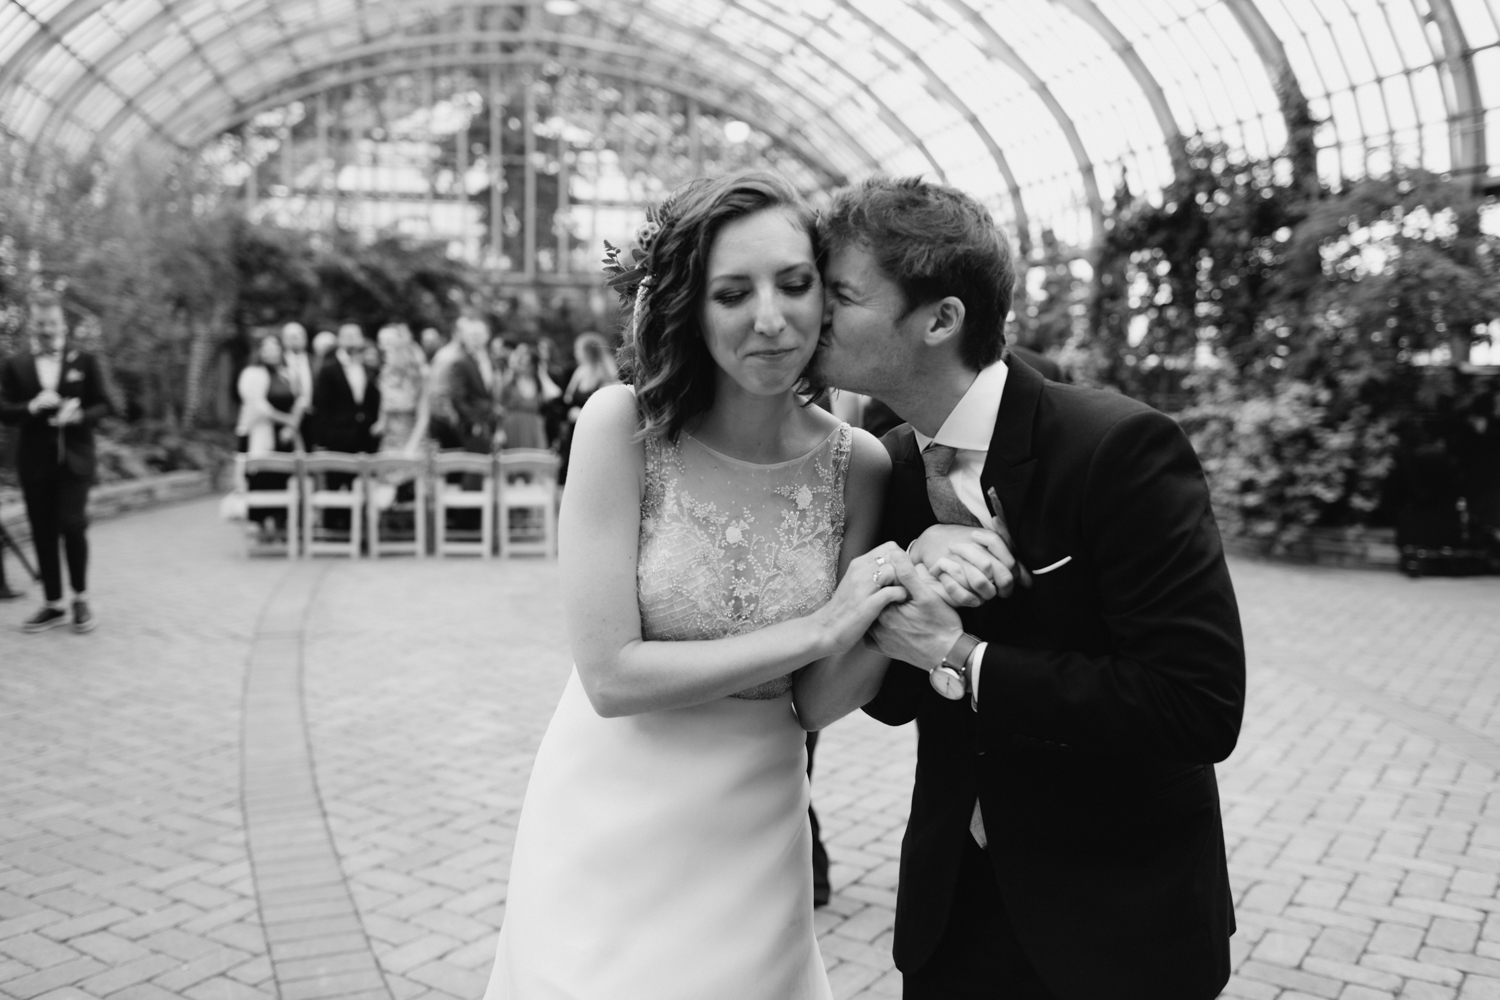 Chicago Garfield Park Conservatory Wedding by Northern Michigan Photographer Mae Stier-068.jpg